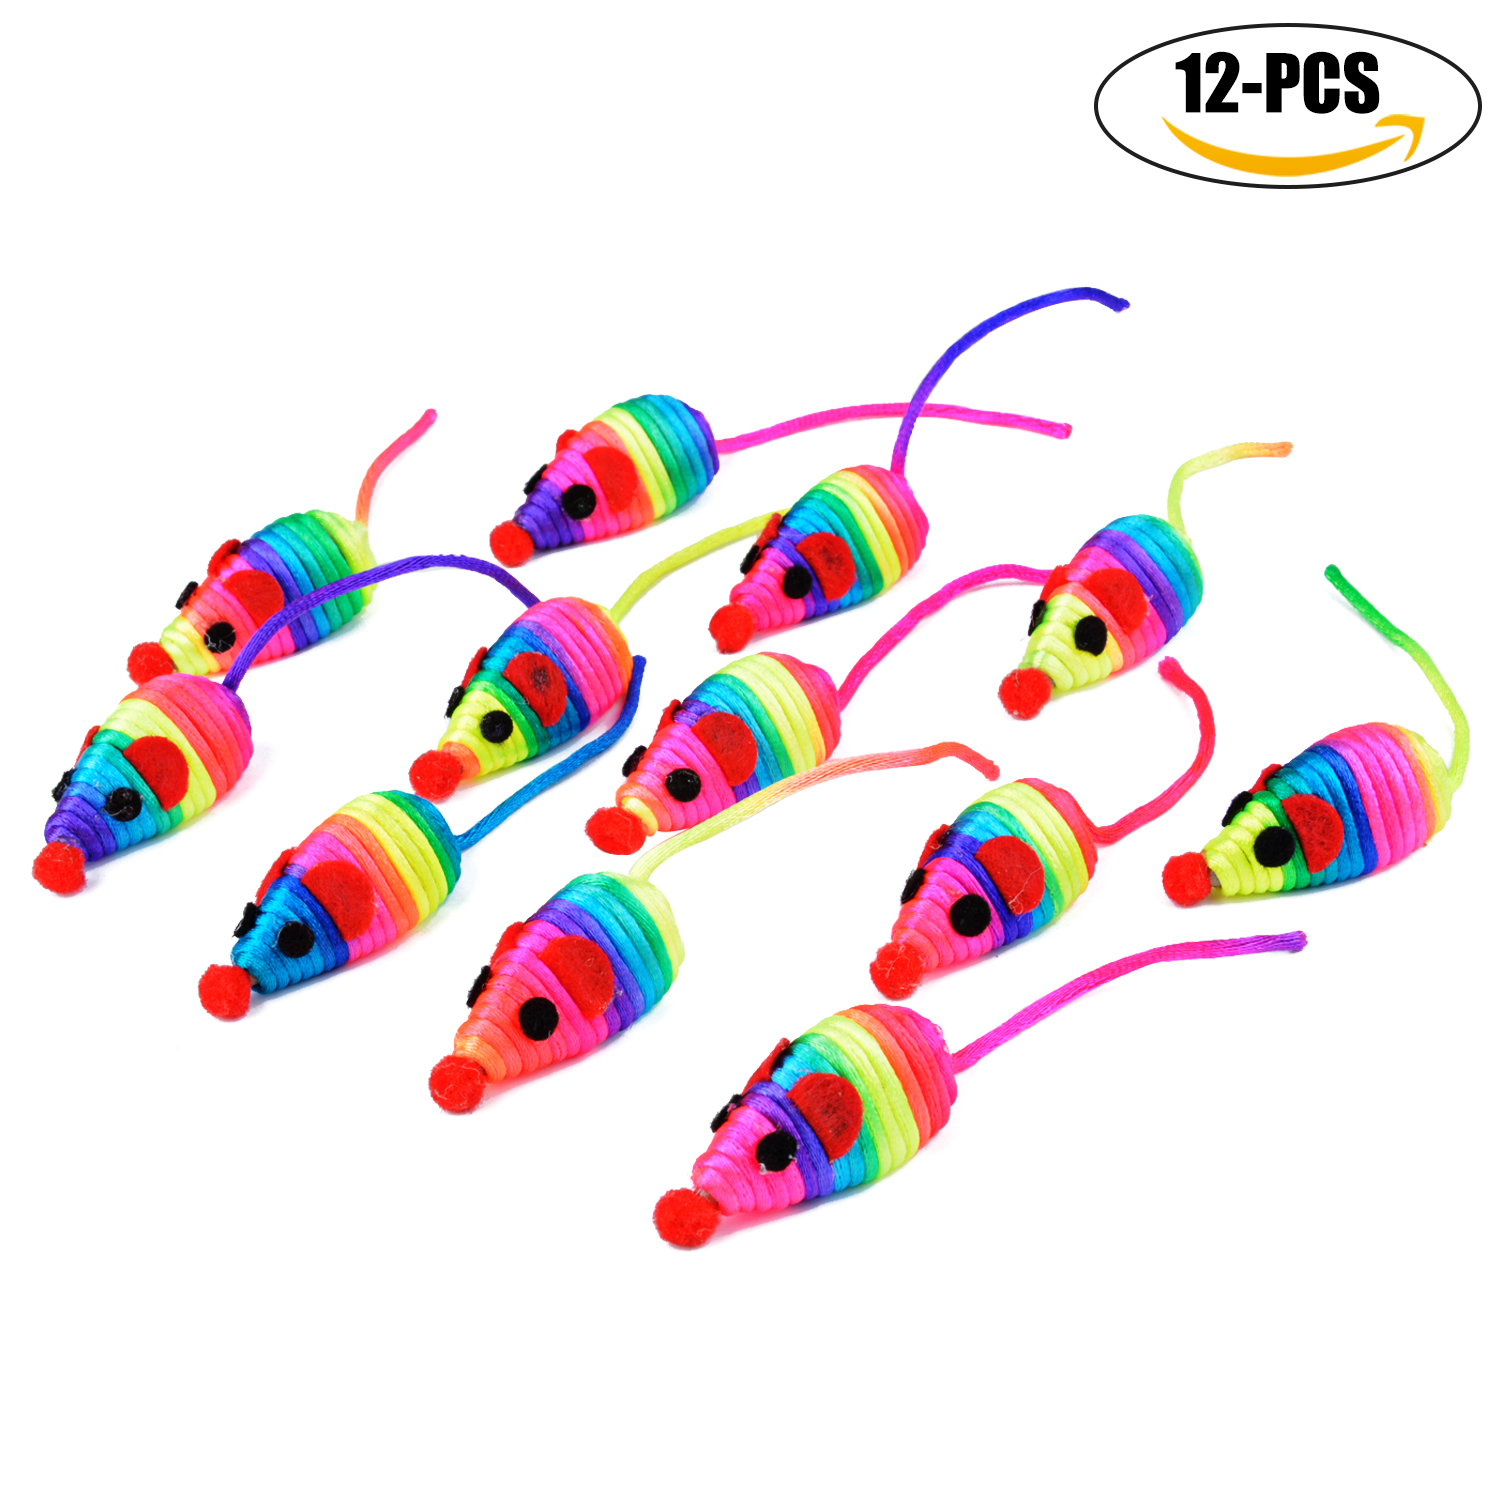 12Pcs Cat Toys set, Legendog Interactive Colorful String Mouse Cat Teaser Toys Kitten Toys for Cats Kittens by Legendog